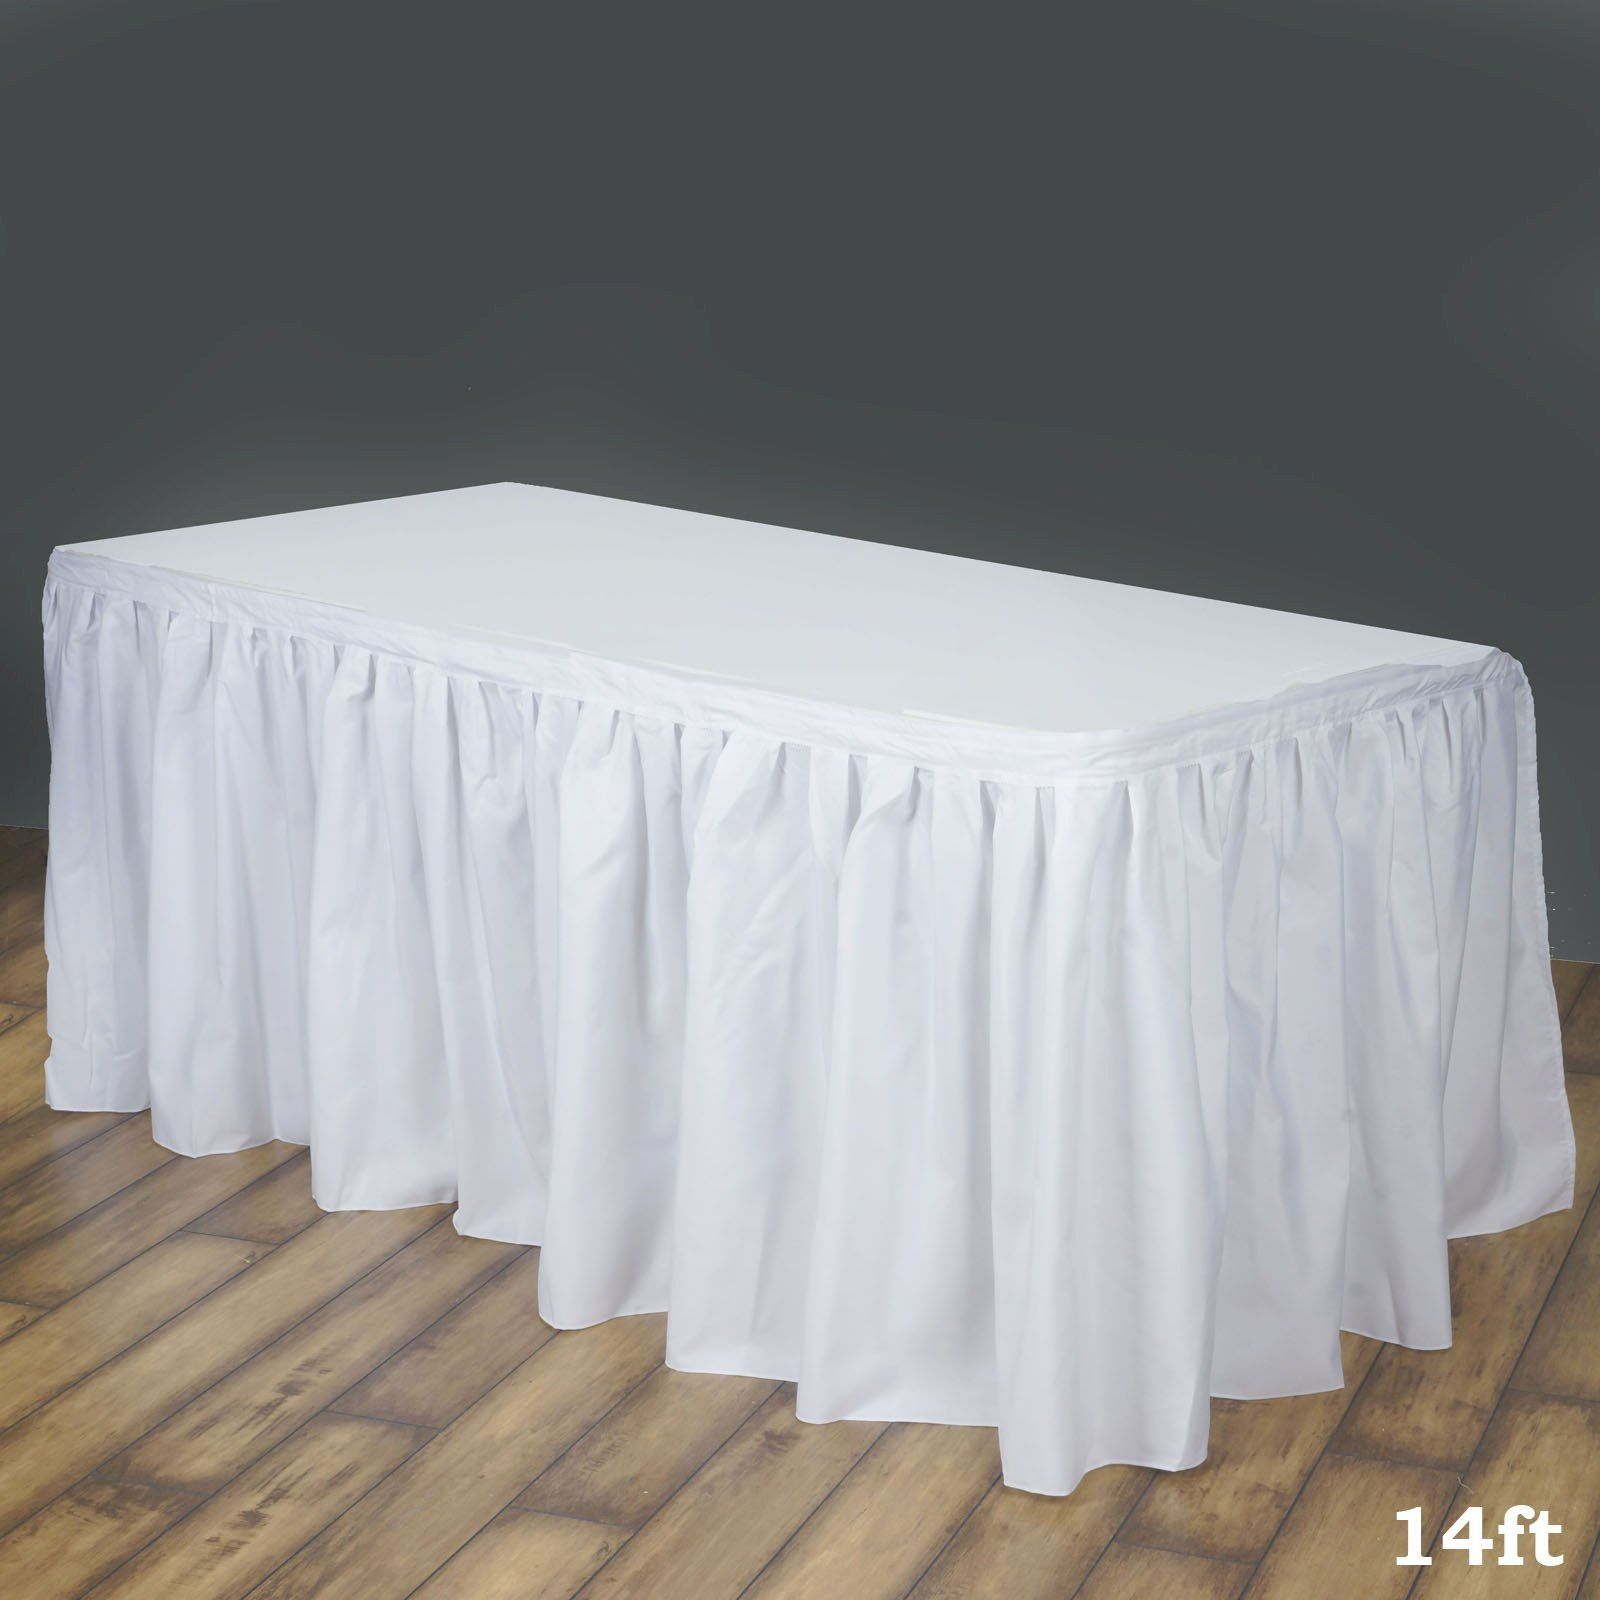 14FT White Pleated Polyester Table Skirt Table, Lace